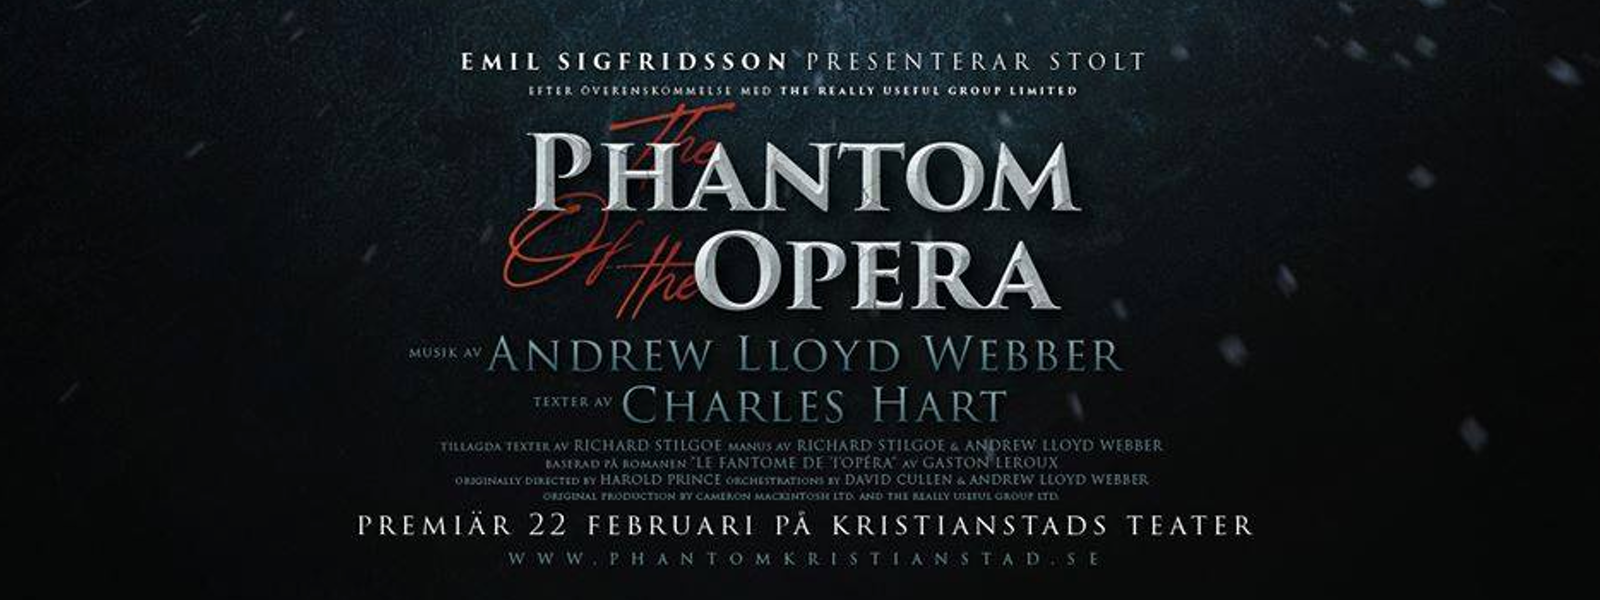 Bild - The Phantom Of the Opera